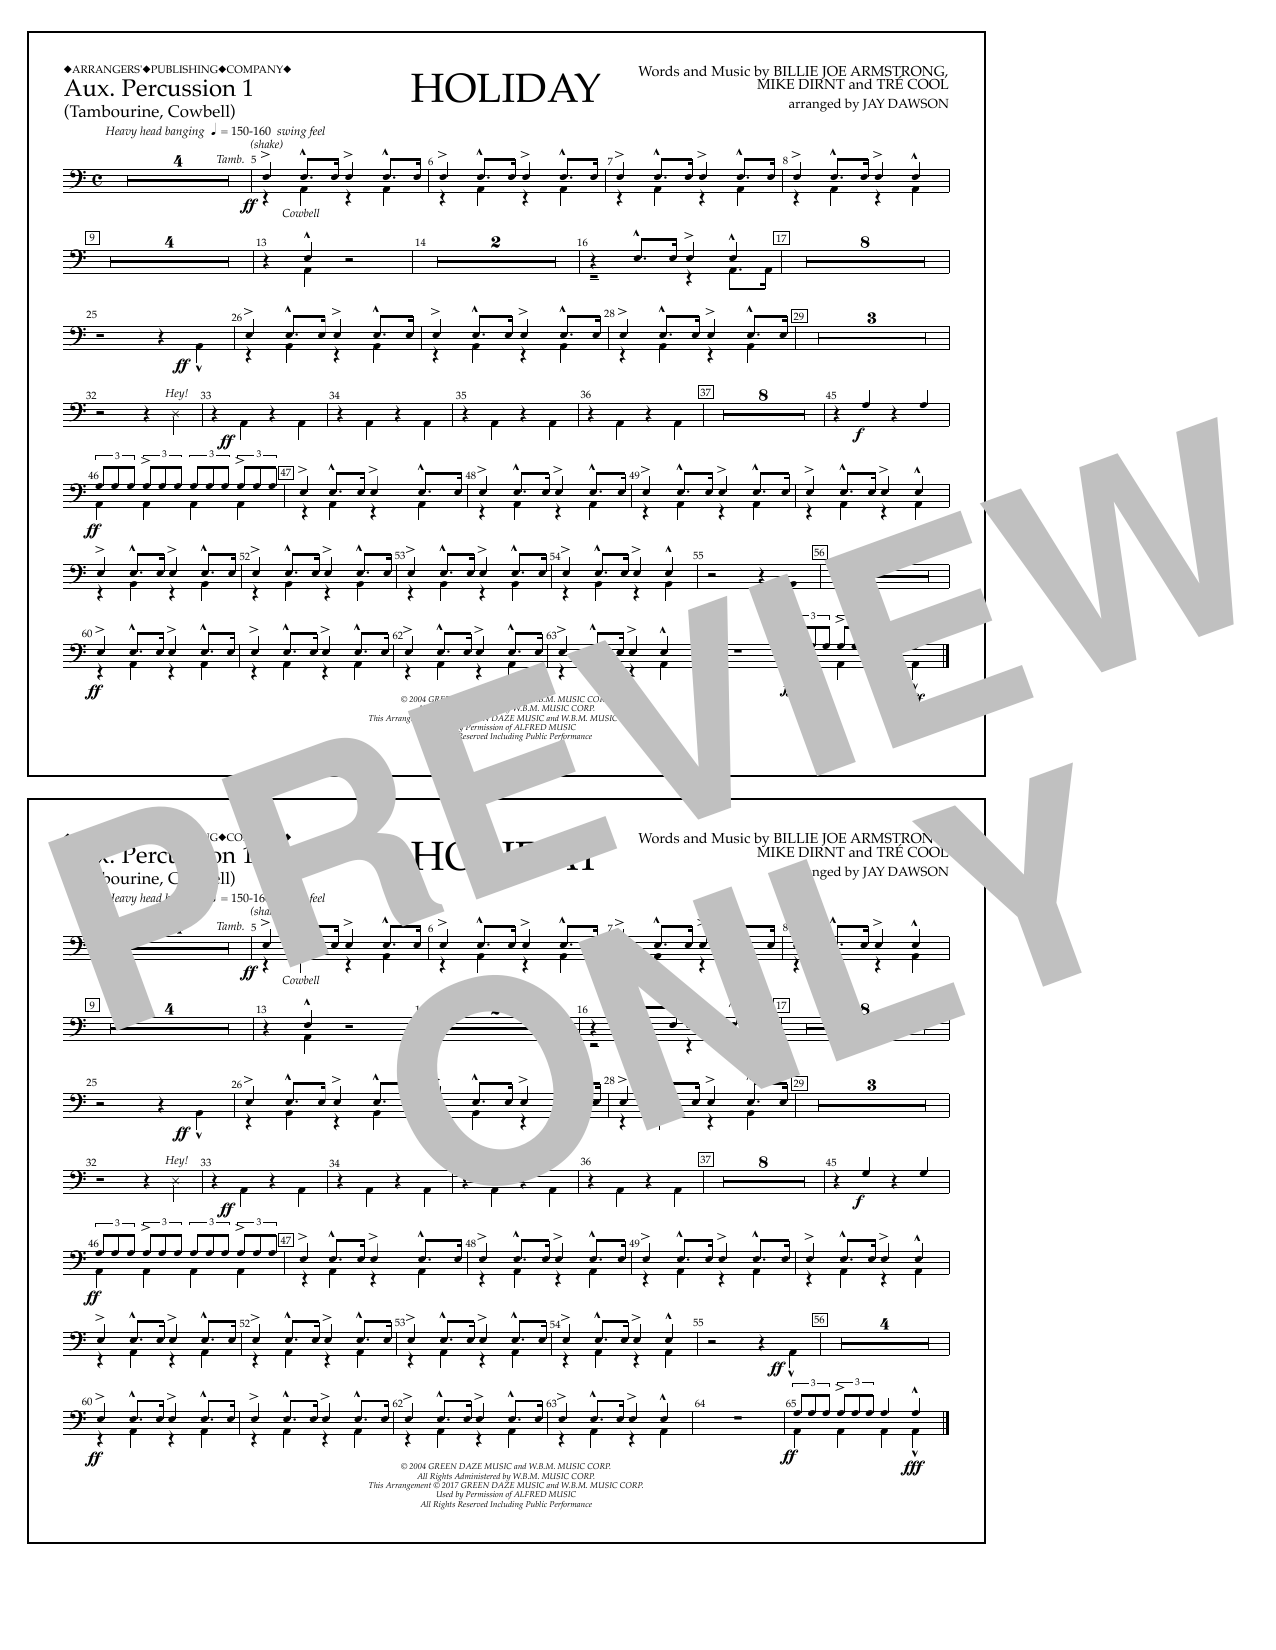 Holiday - Aux. Percussion 1 Sheet Music